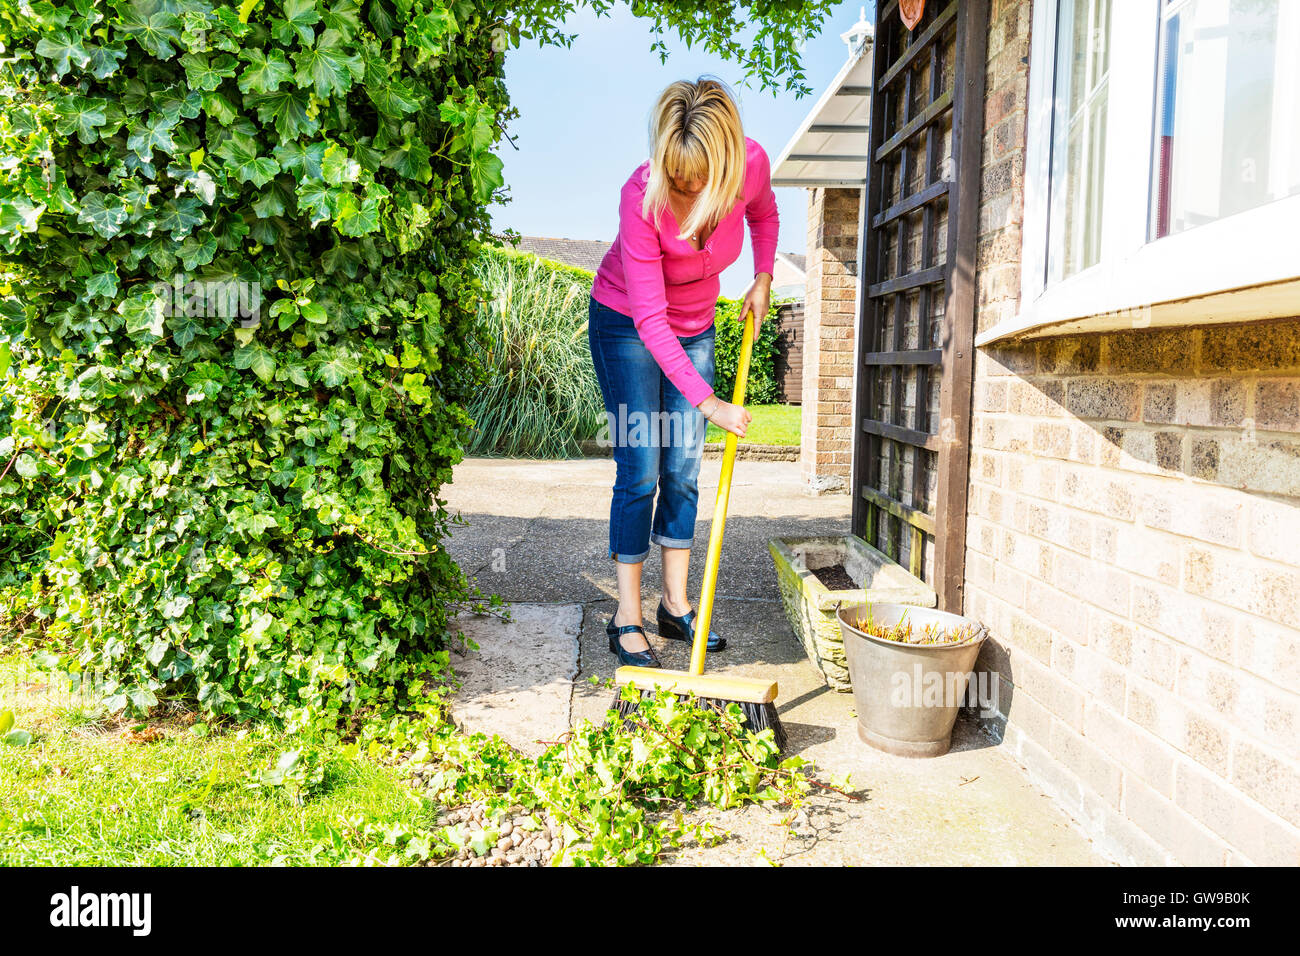 sweeping up mess broom brushing sweep gardening gardener hedge cuttings UK England GB Stock Photo